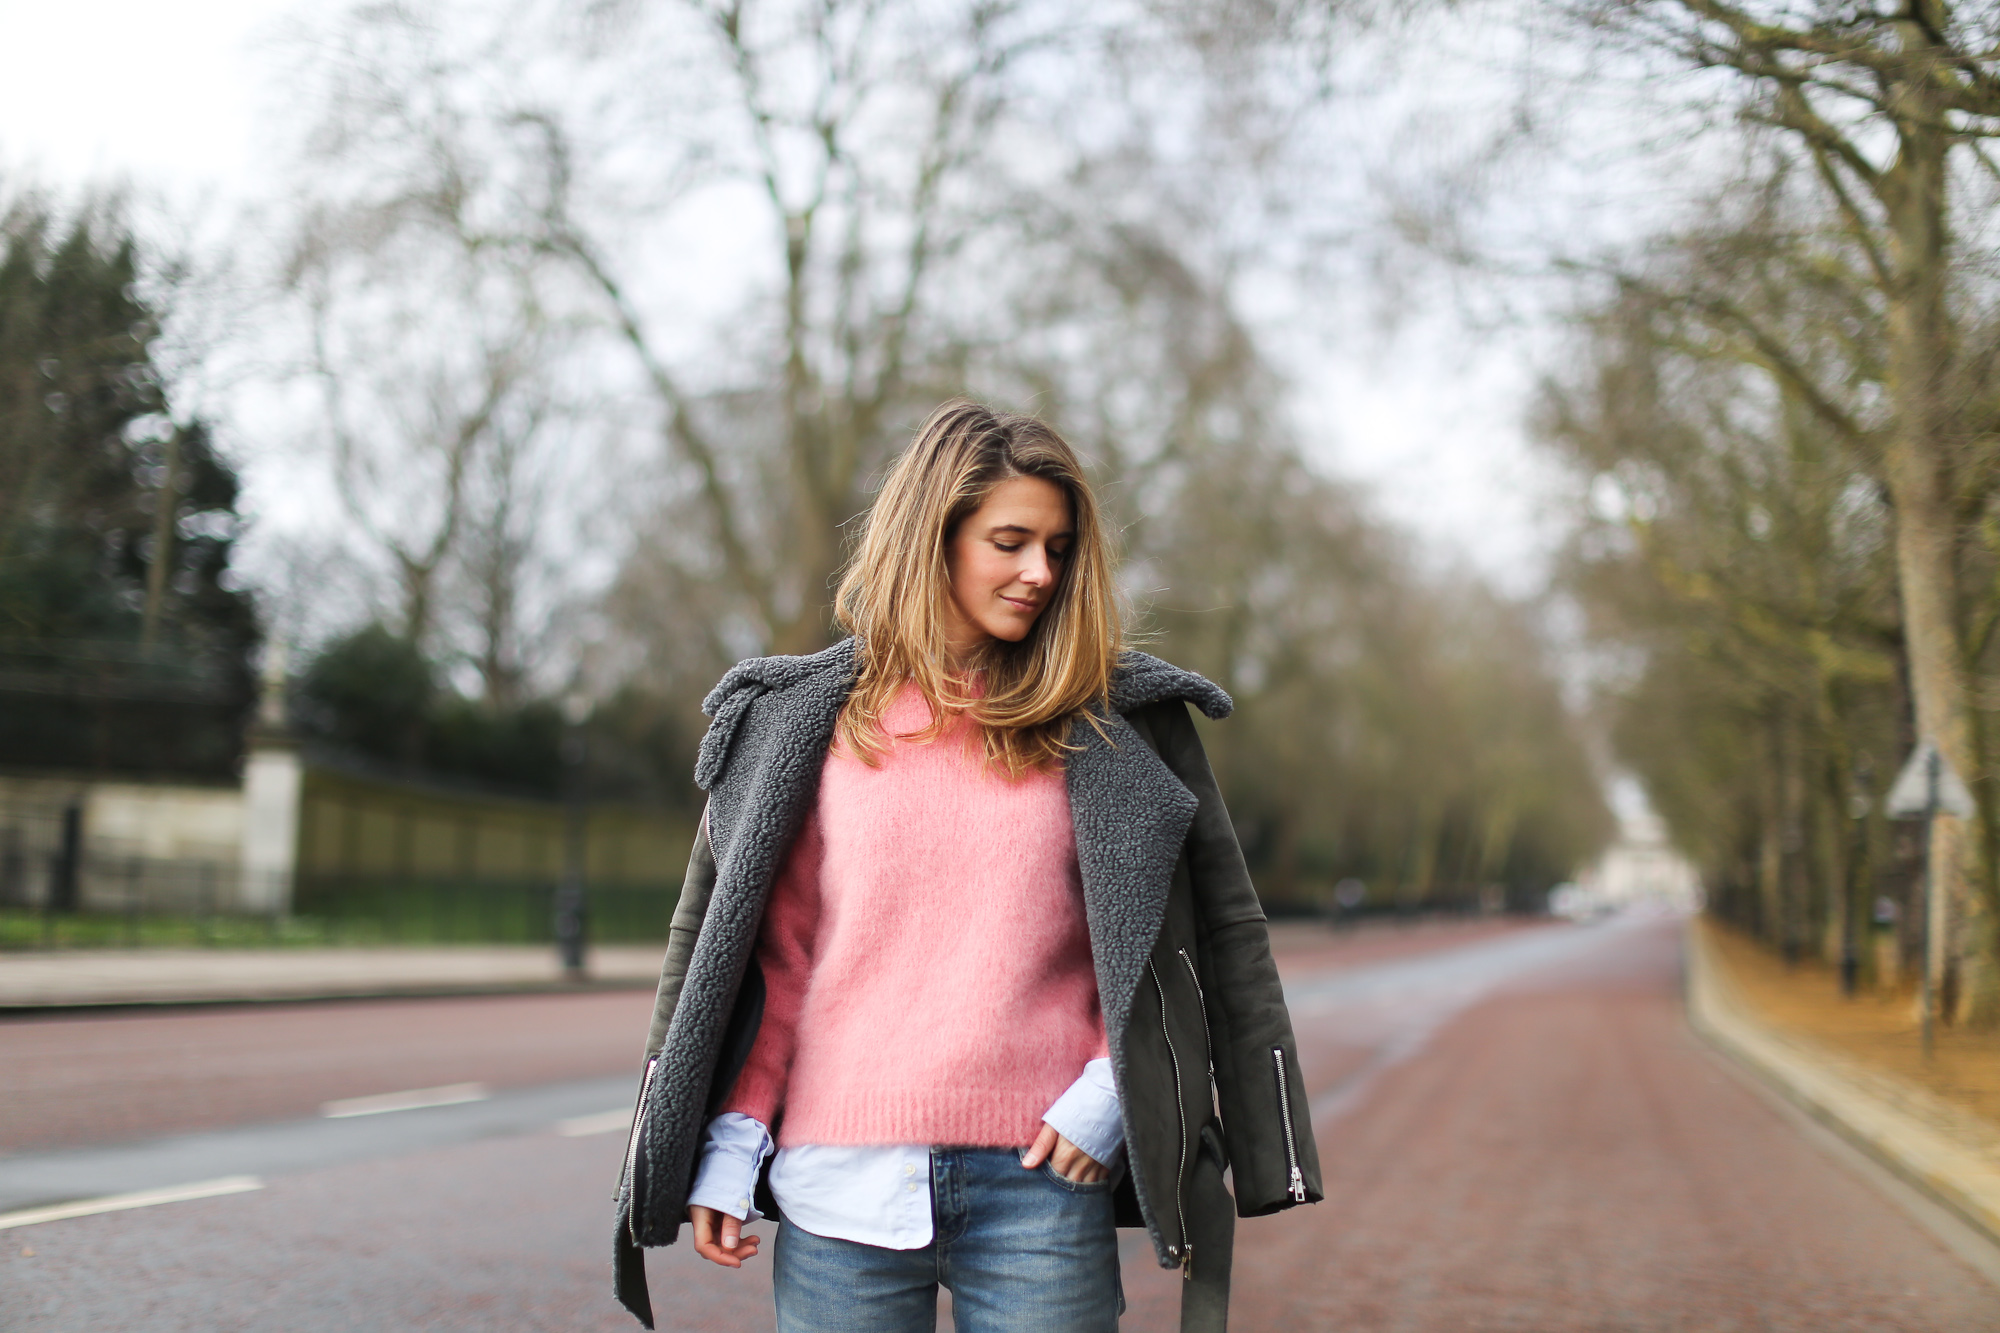 Clochet_streetstyle_london_fashion_week_bimba&lola_pink_mohair_knit-6